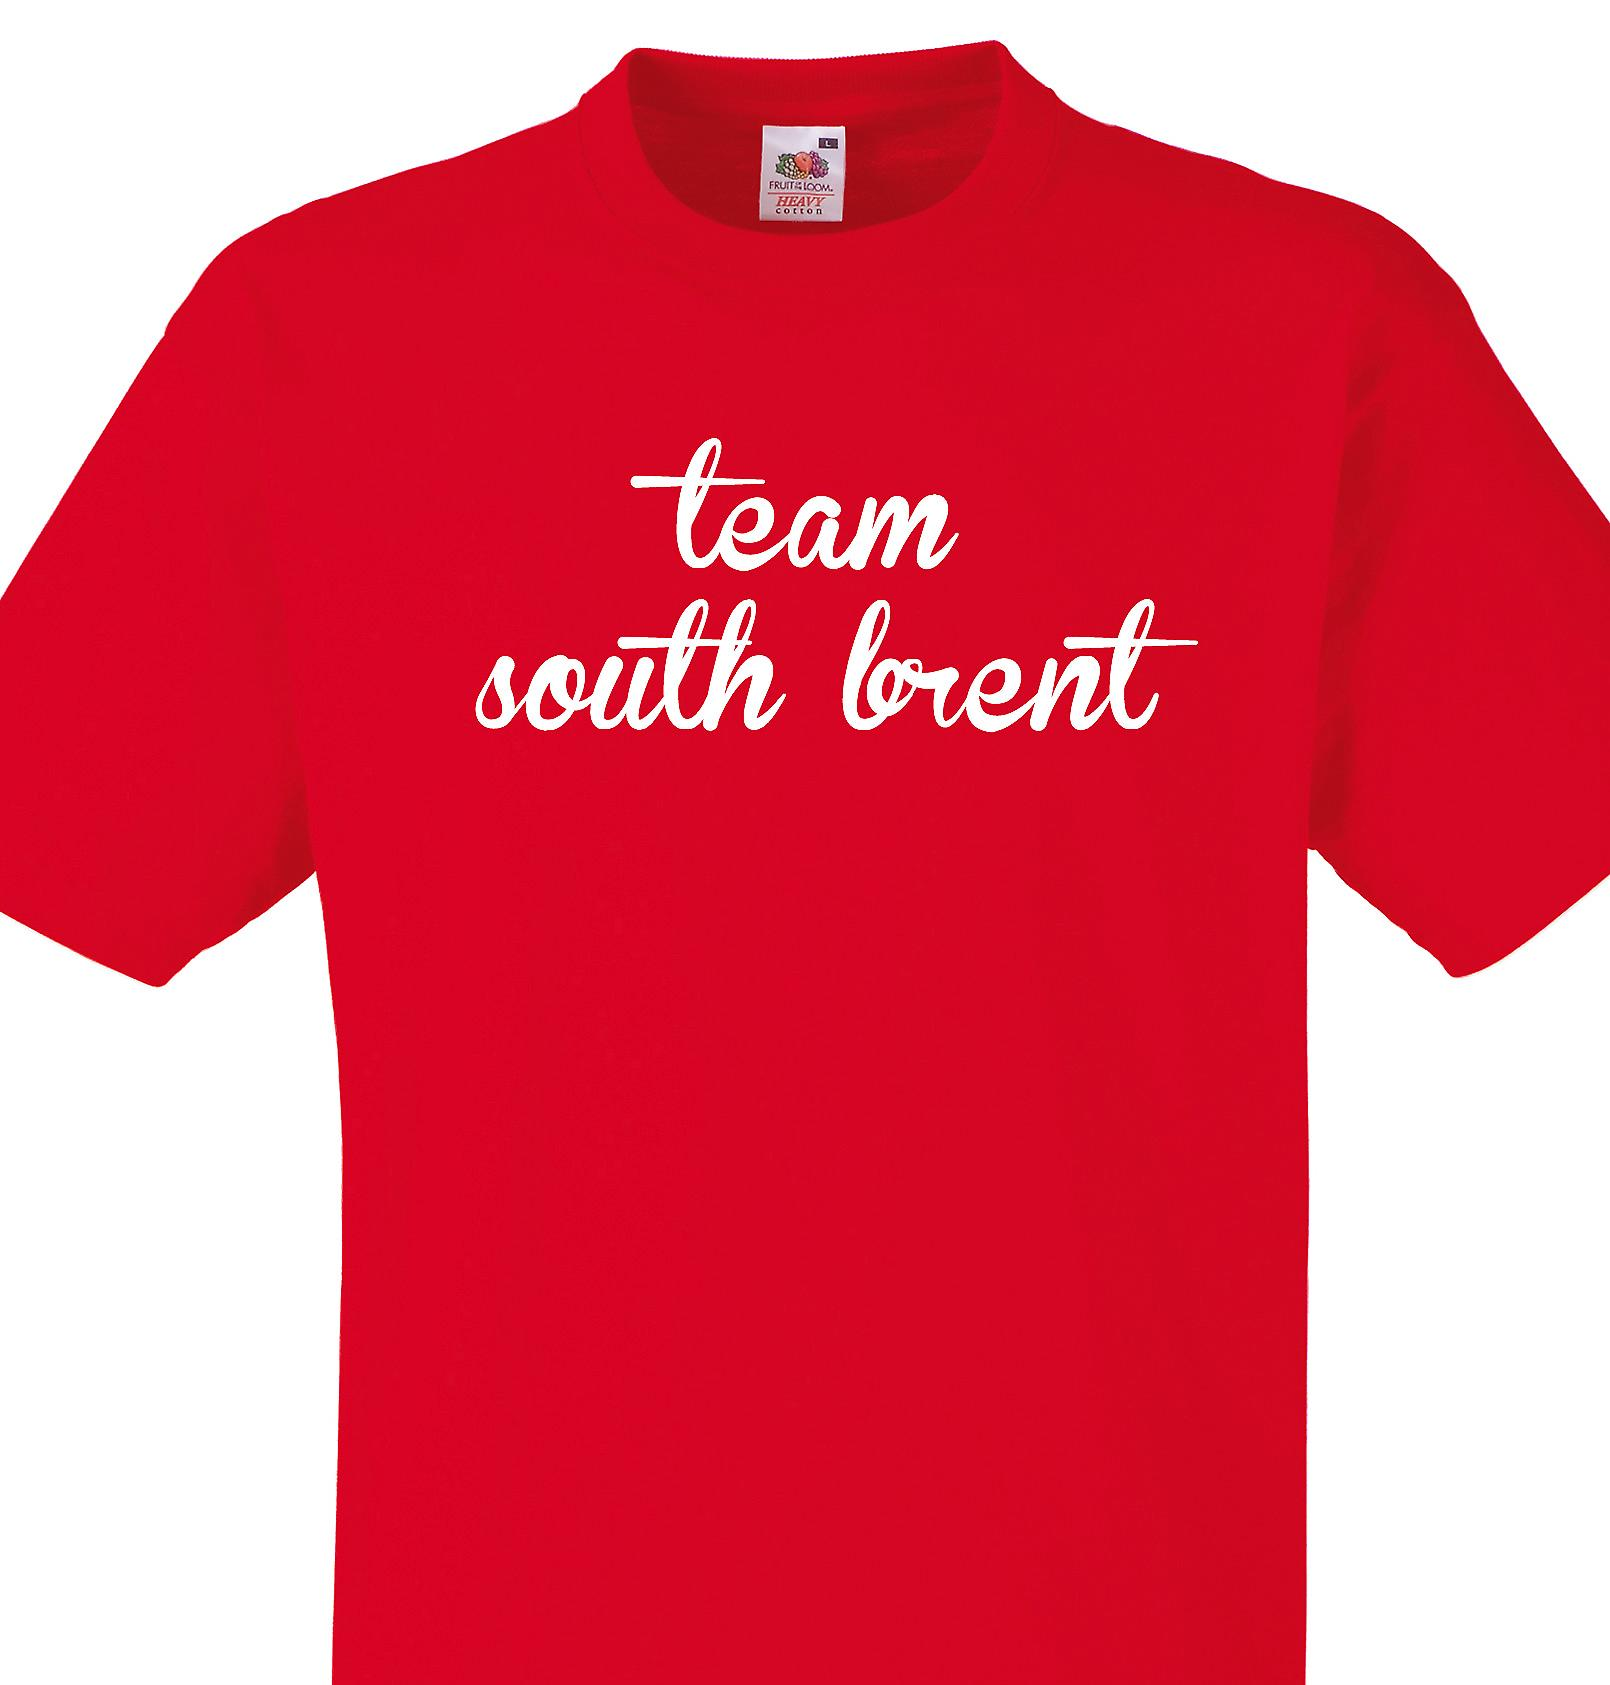 Team South brent Red T shirt